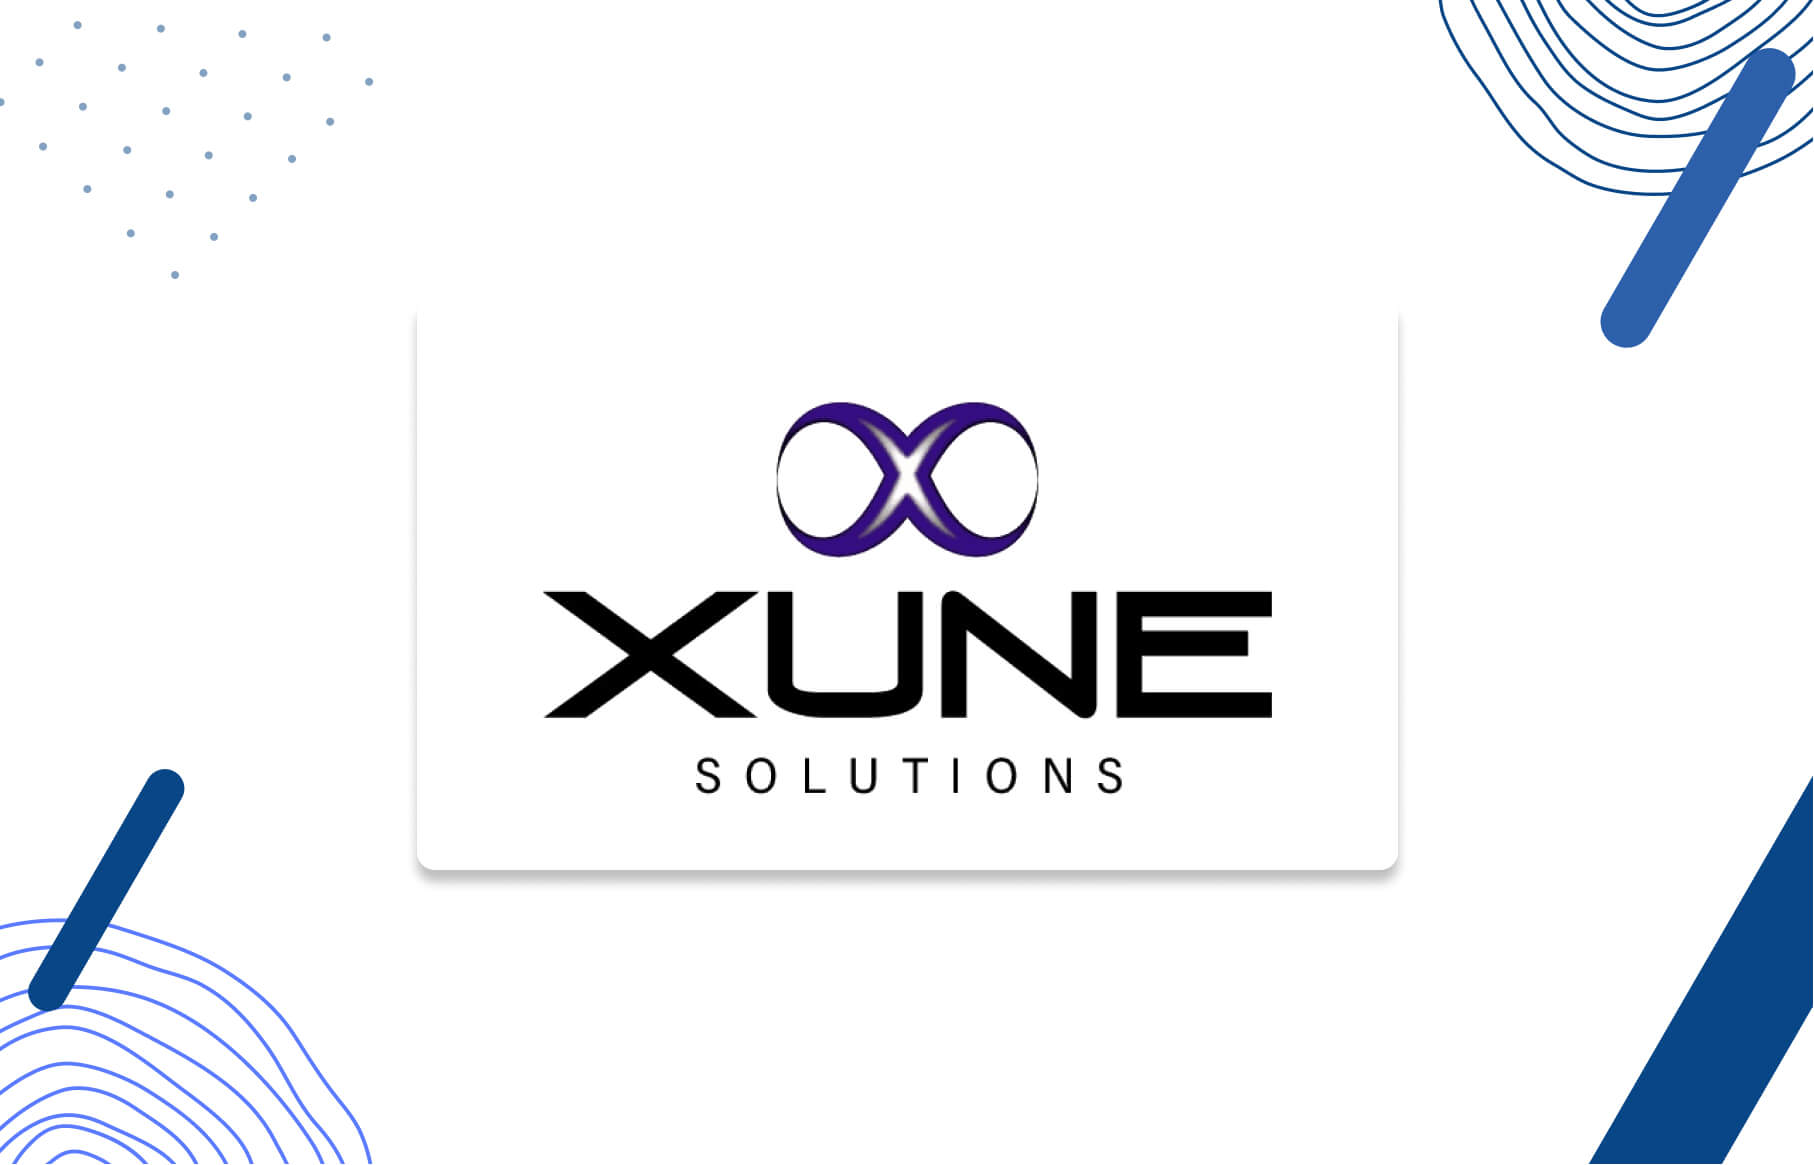 Xune Solutions Logo - Your Growth Agency